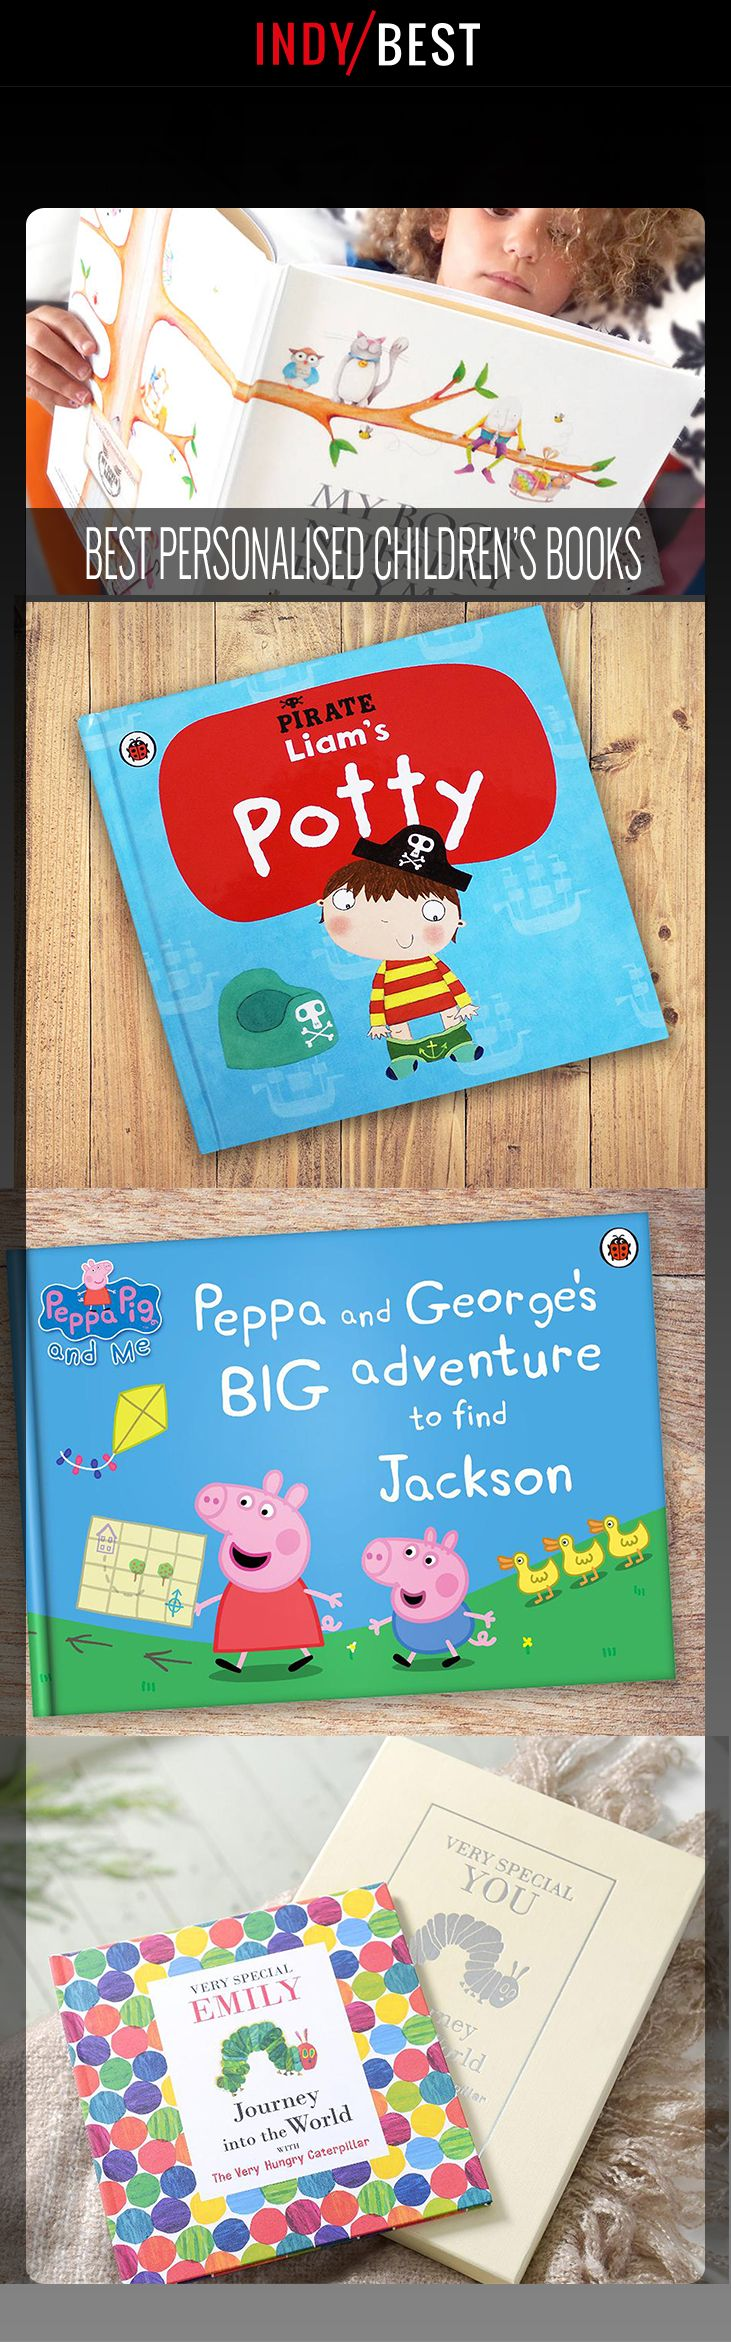 These personalised children's books will keep little ones turning the page: http://ind.pn/2gpnAow